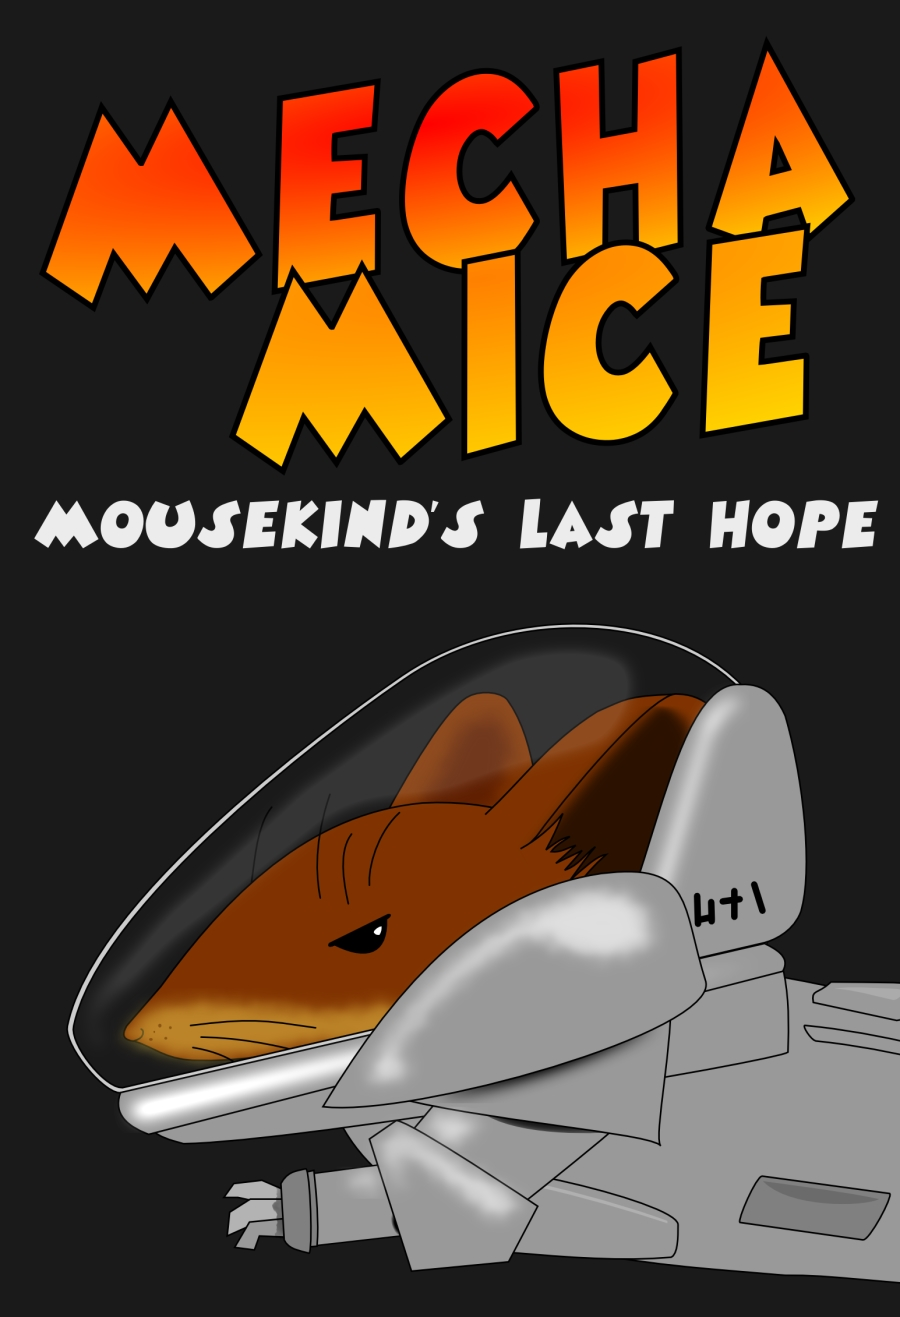 Purchase Mecha Mice